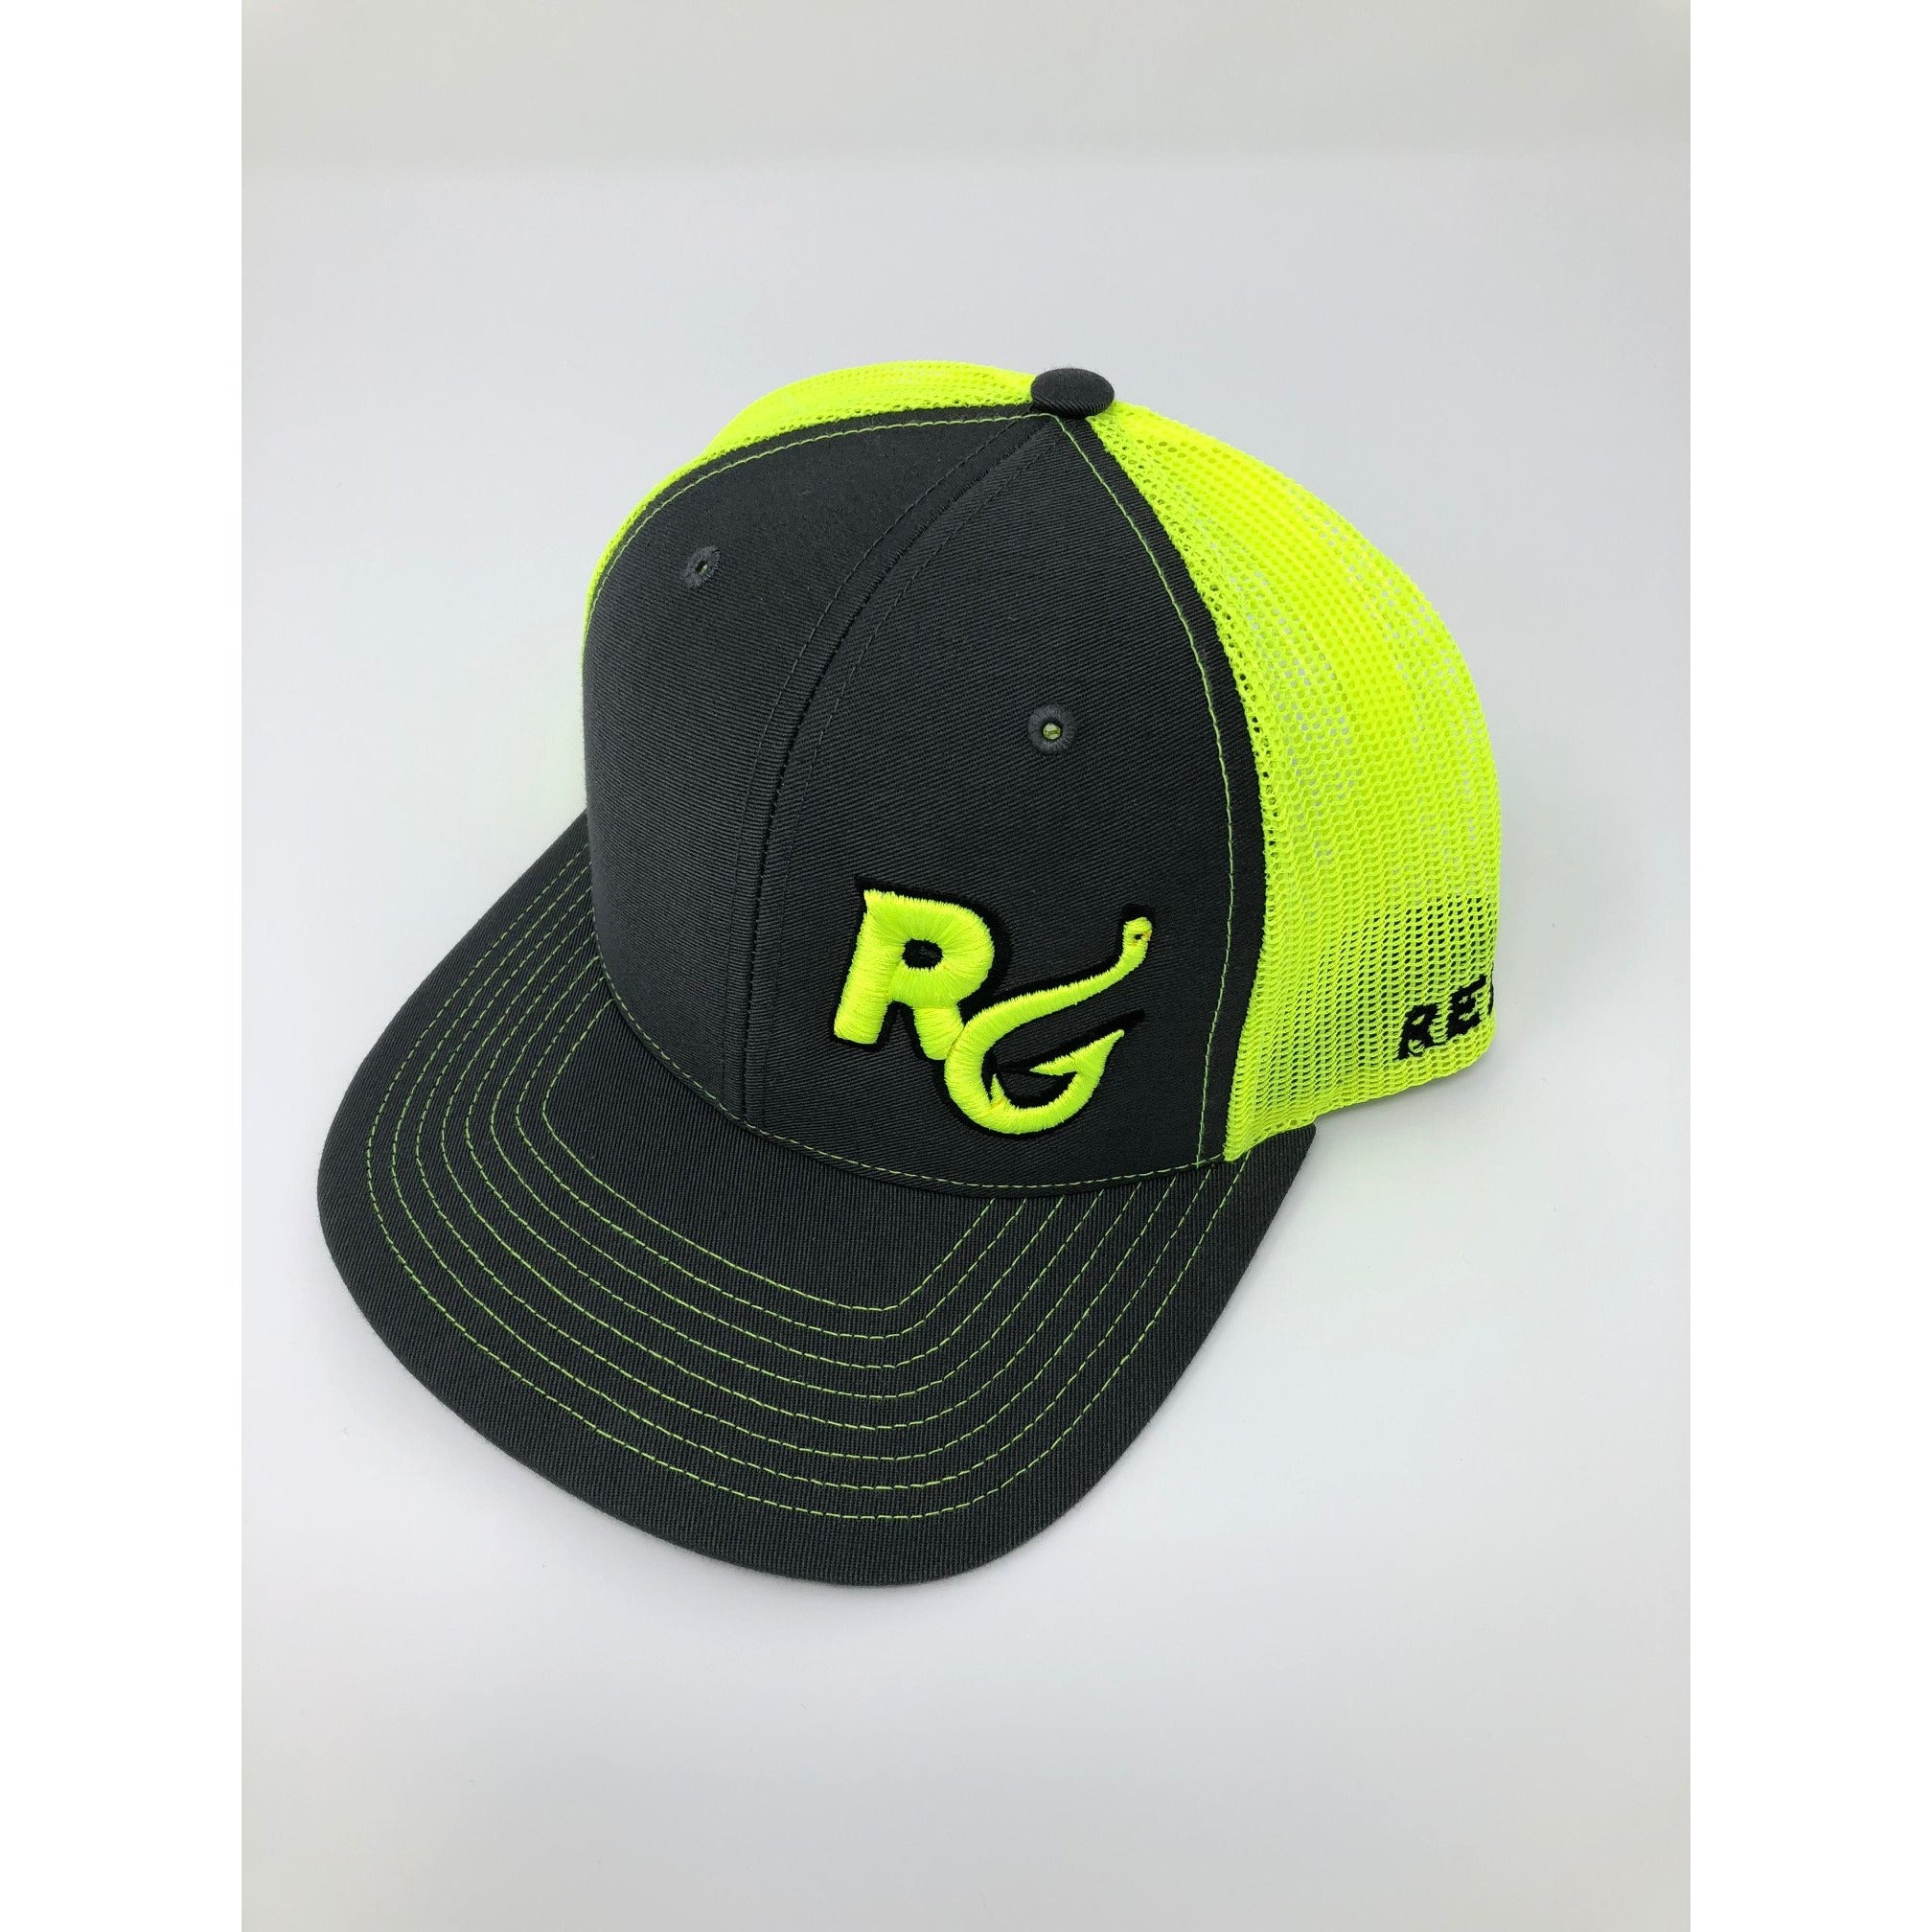 Reel Girls Classic Logo Adjustable Trucker Hat - Charcoal with Neon Yellow